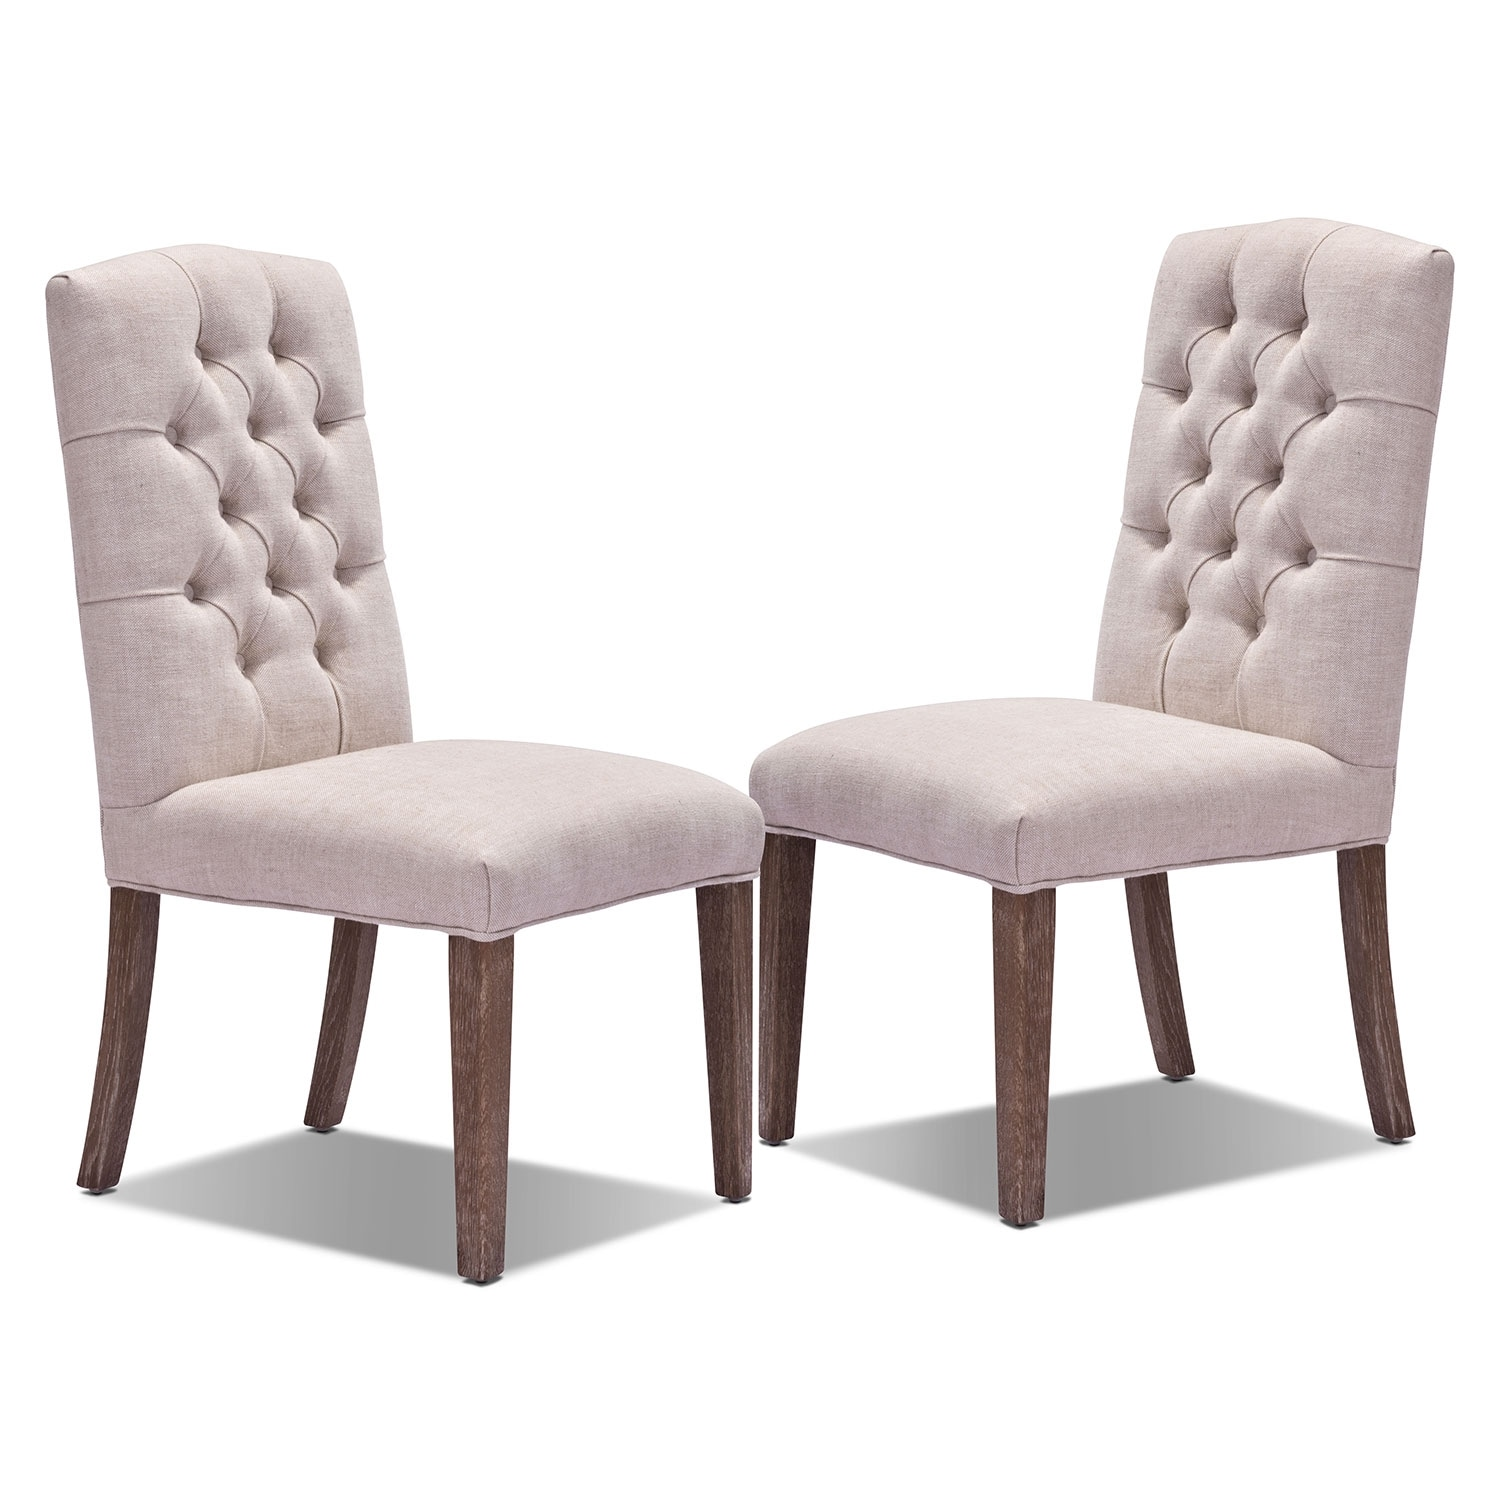 Dining room chairs seating american signature furniture for Dining room sofa seating